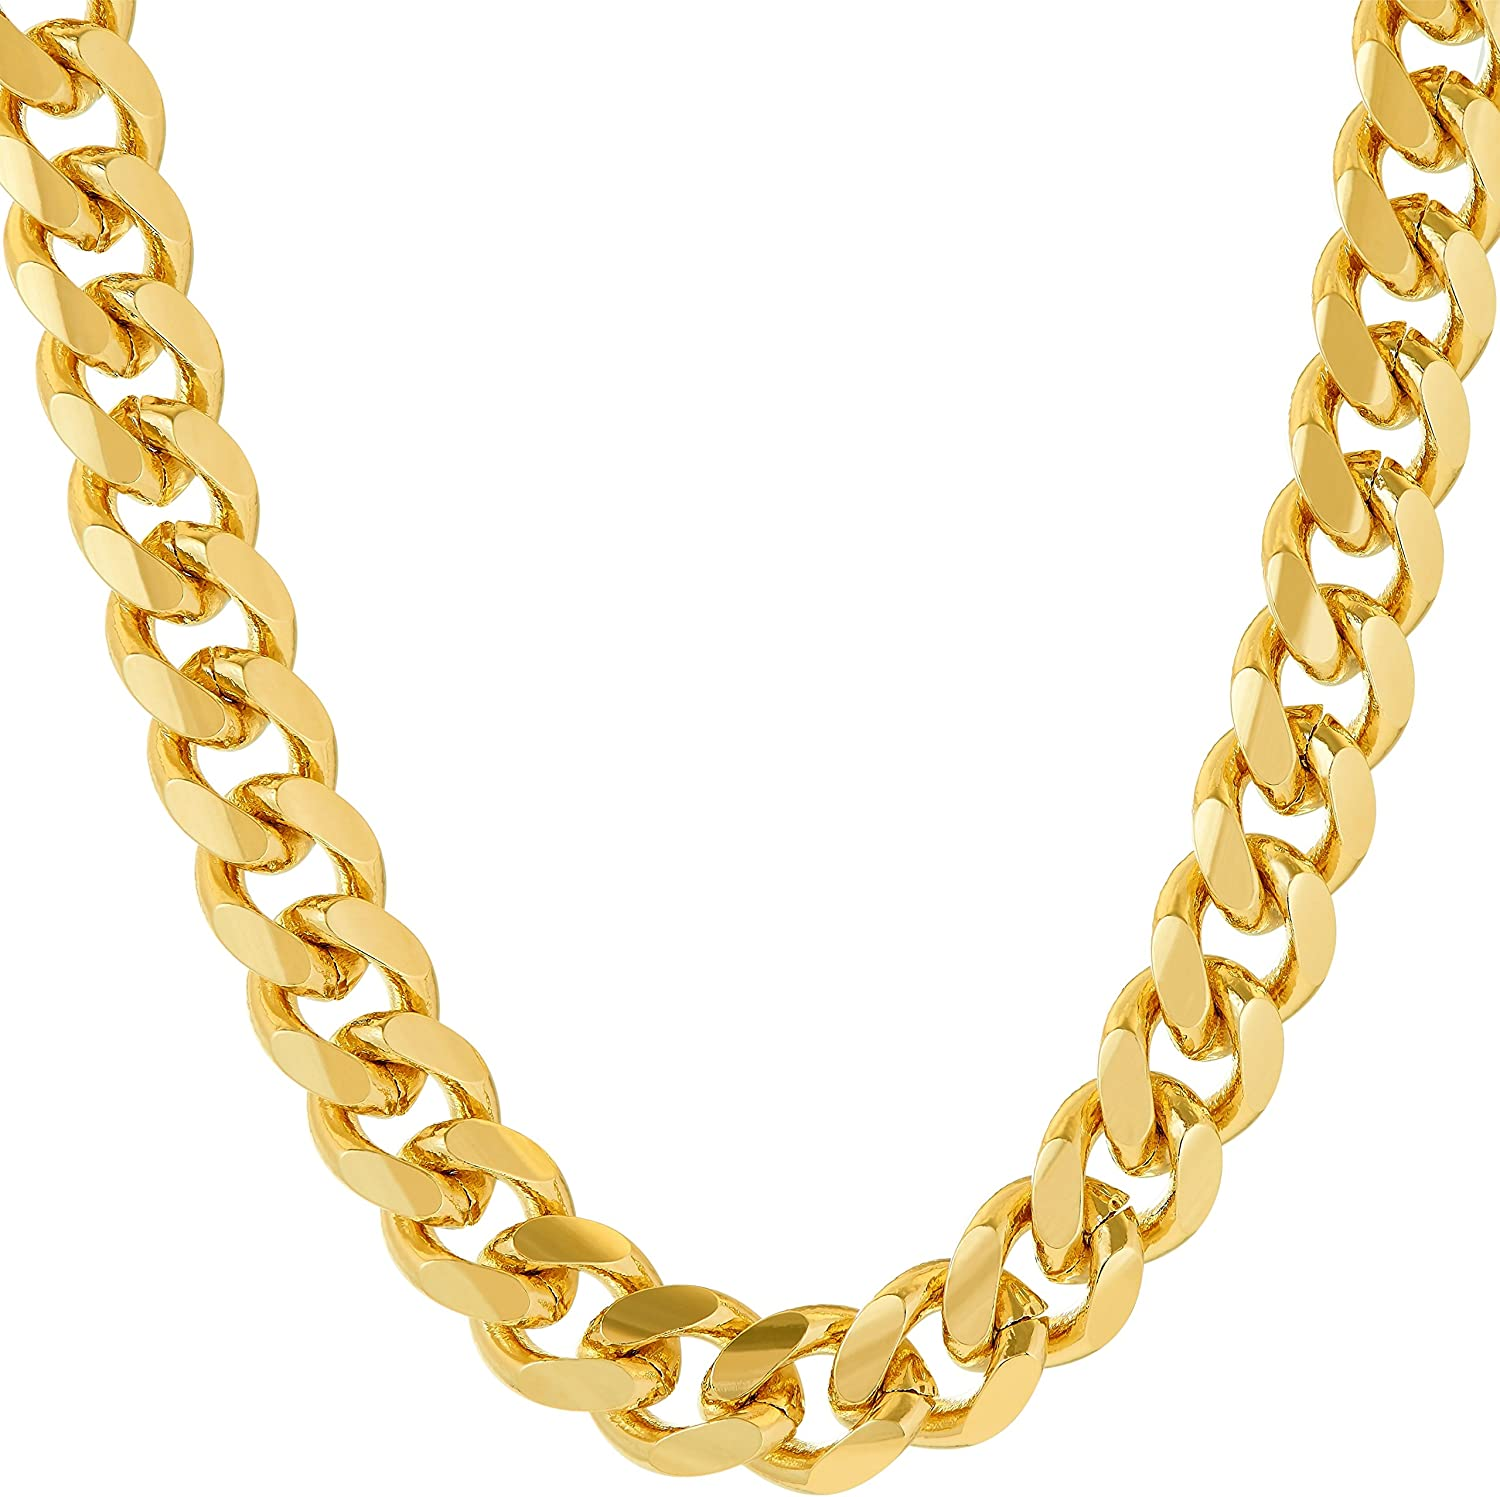 Lifetime Jewelry 9mm Cuban Link Chain Necklace For Men Women 24k Gold Plated 18 Inches Amazon Com